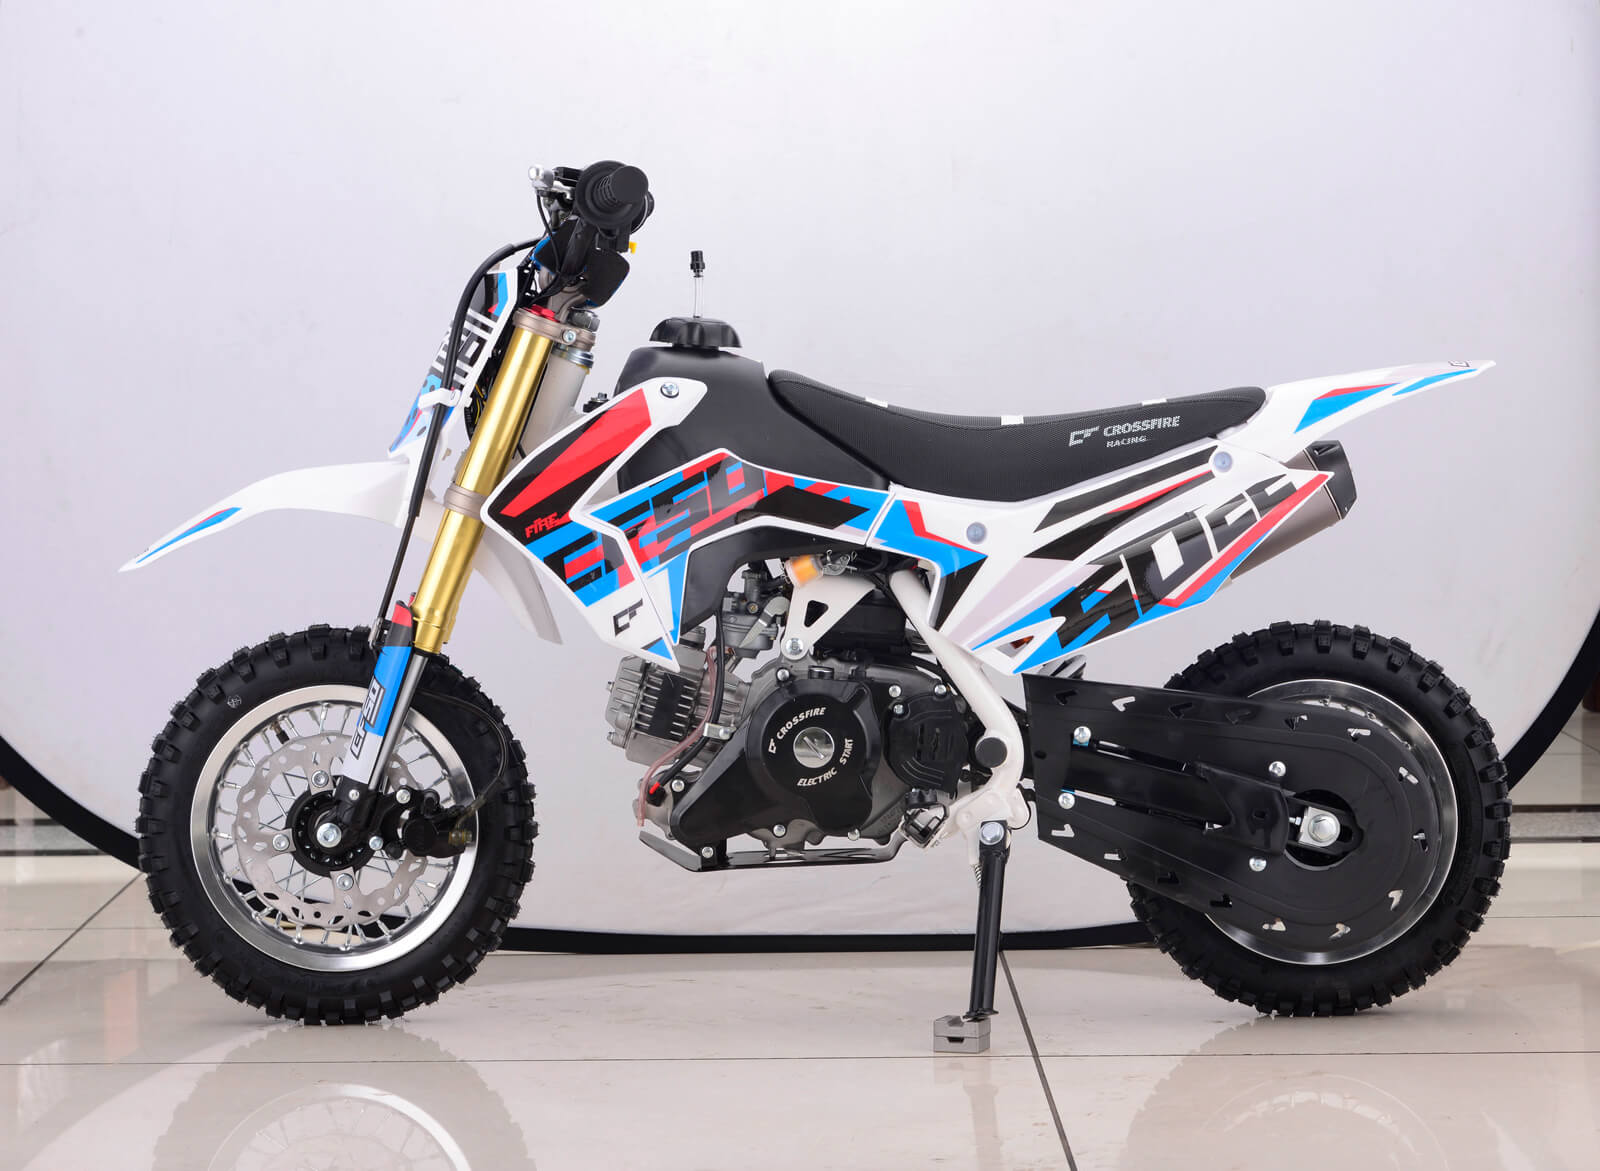 crossfire-cf50-motorbike-dirt-children-kids-white-2